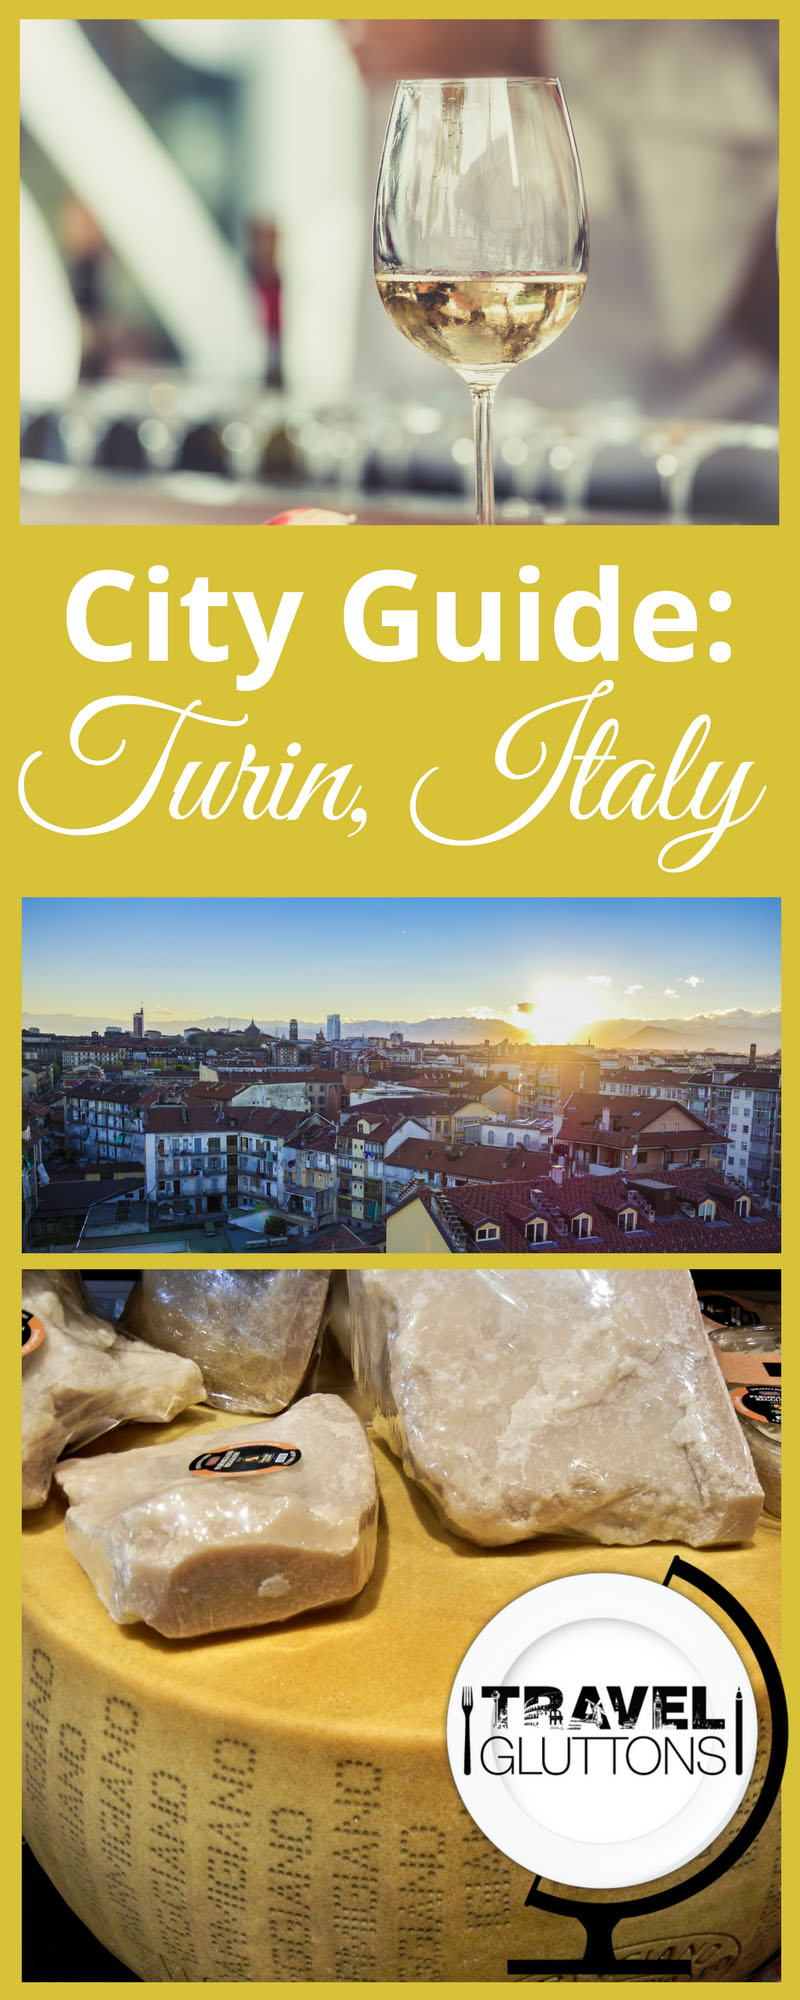 Turin, Italy has all of the food, activities, events, shopping and history that you'd expect for a great vacation, without all of the crowds. View our City Guide by clicking the photo.